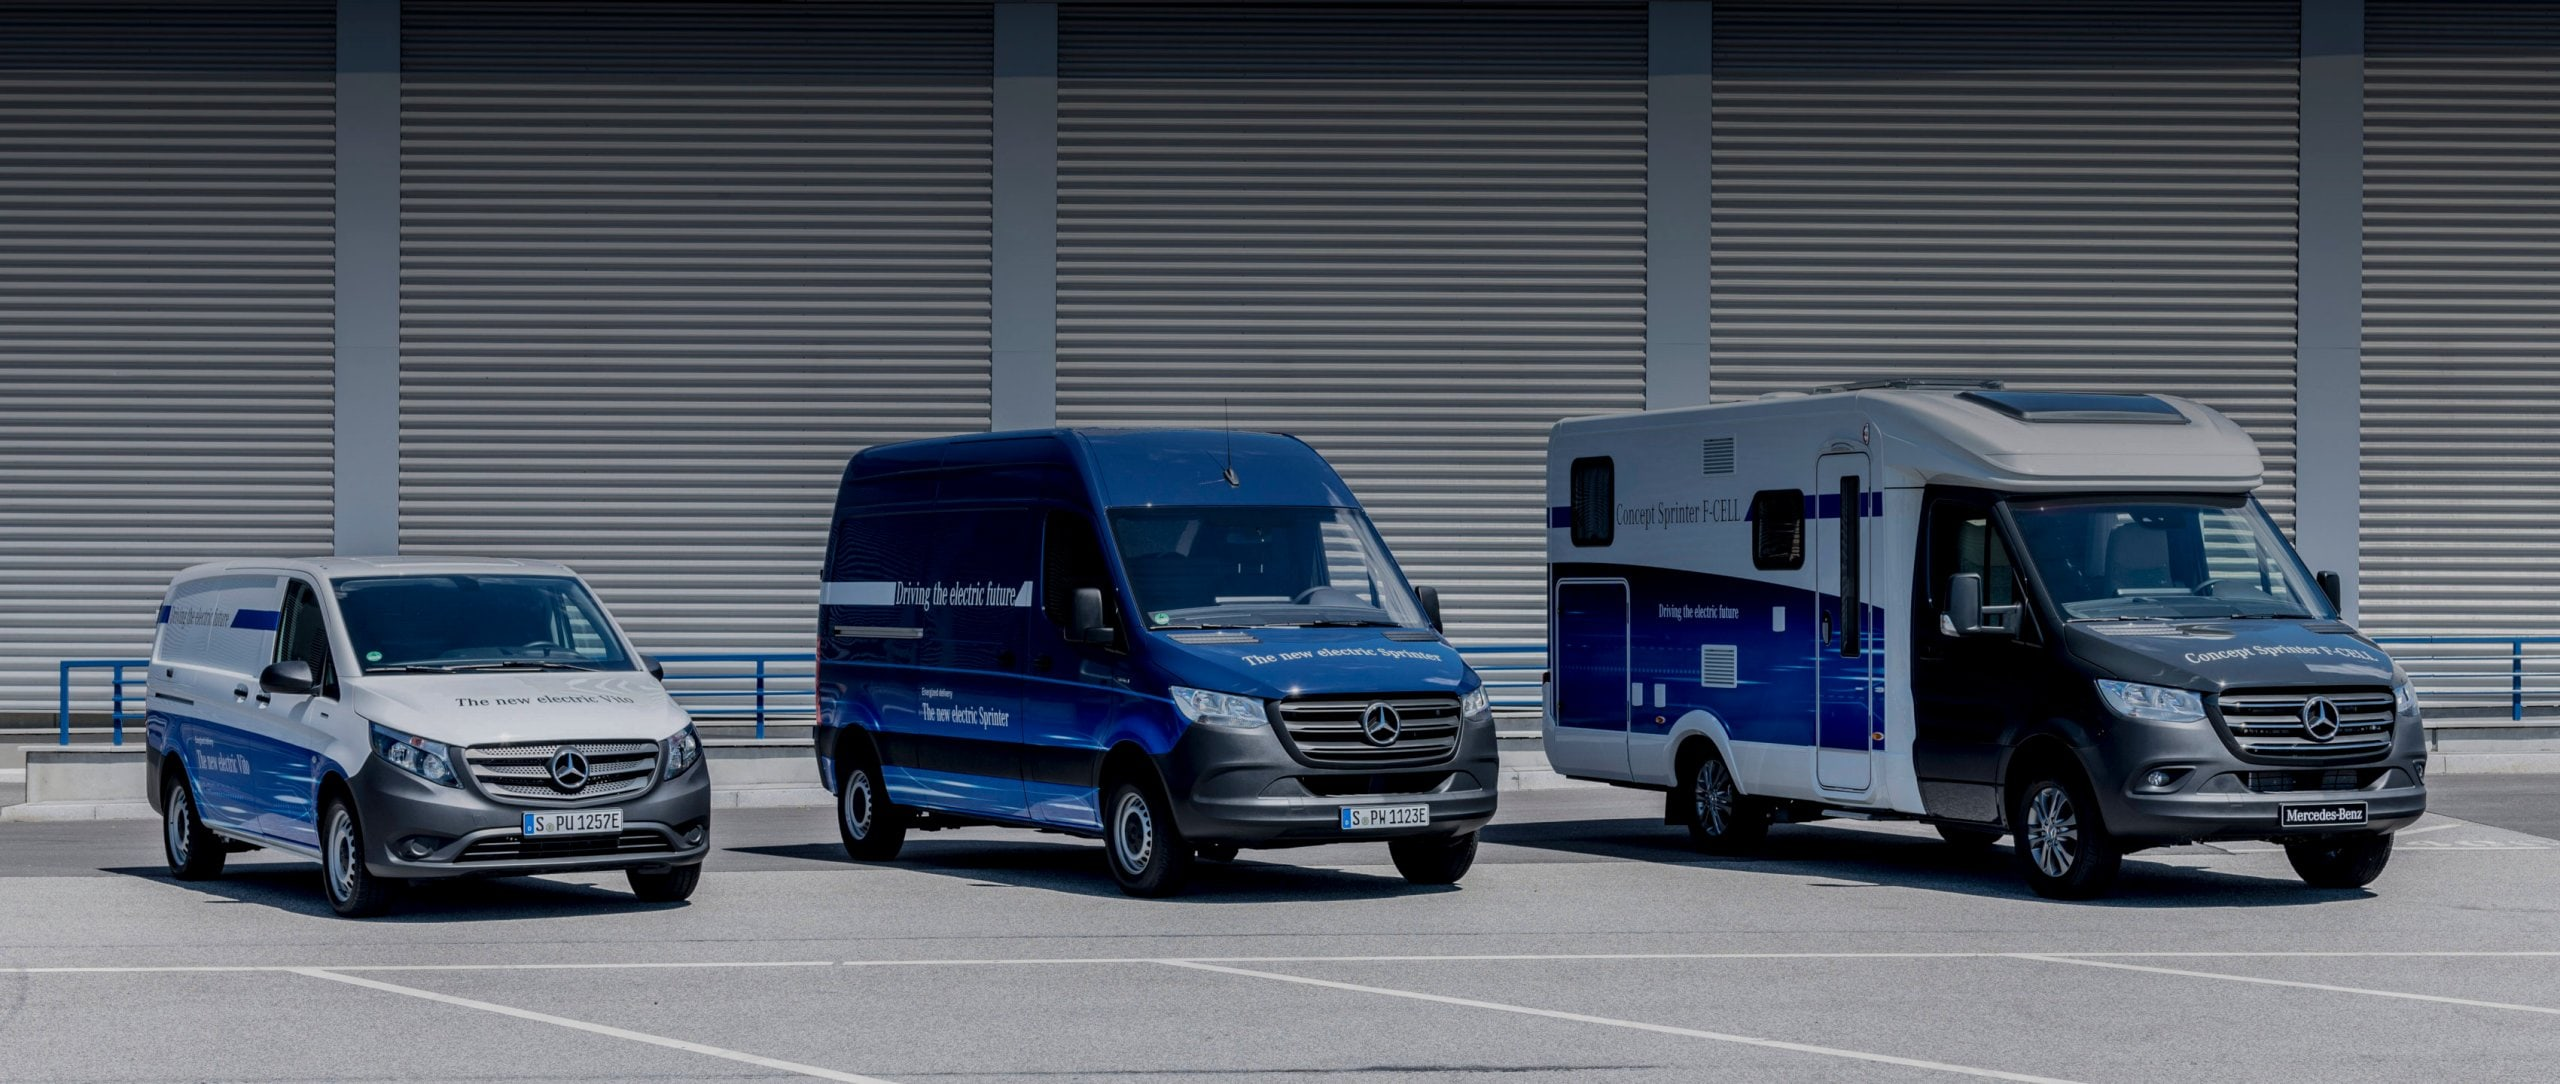 Die Mercedes-Benz Elektrotransporter beim eDrive@VANs next level 2018 in Hamburg.